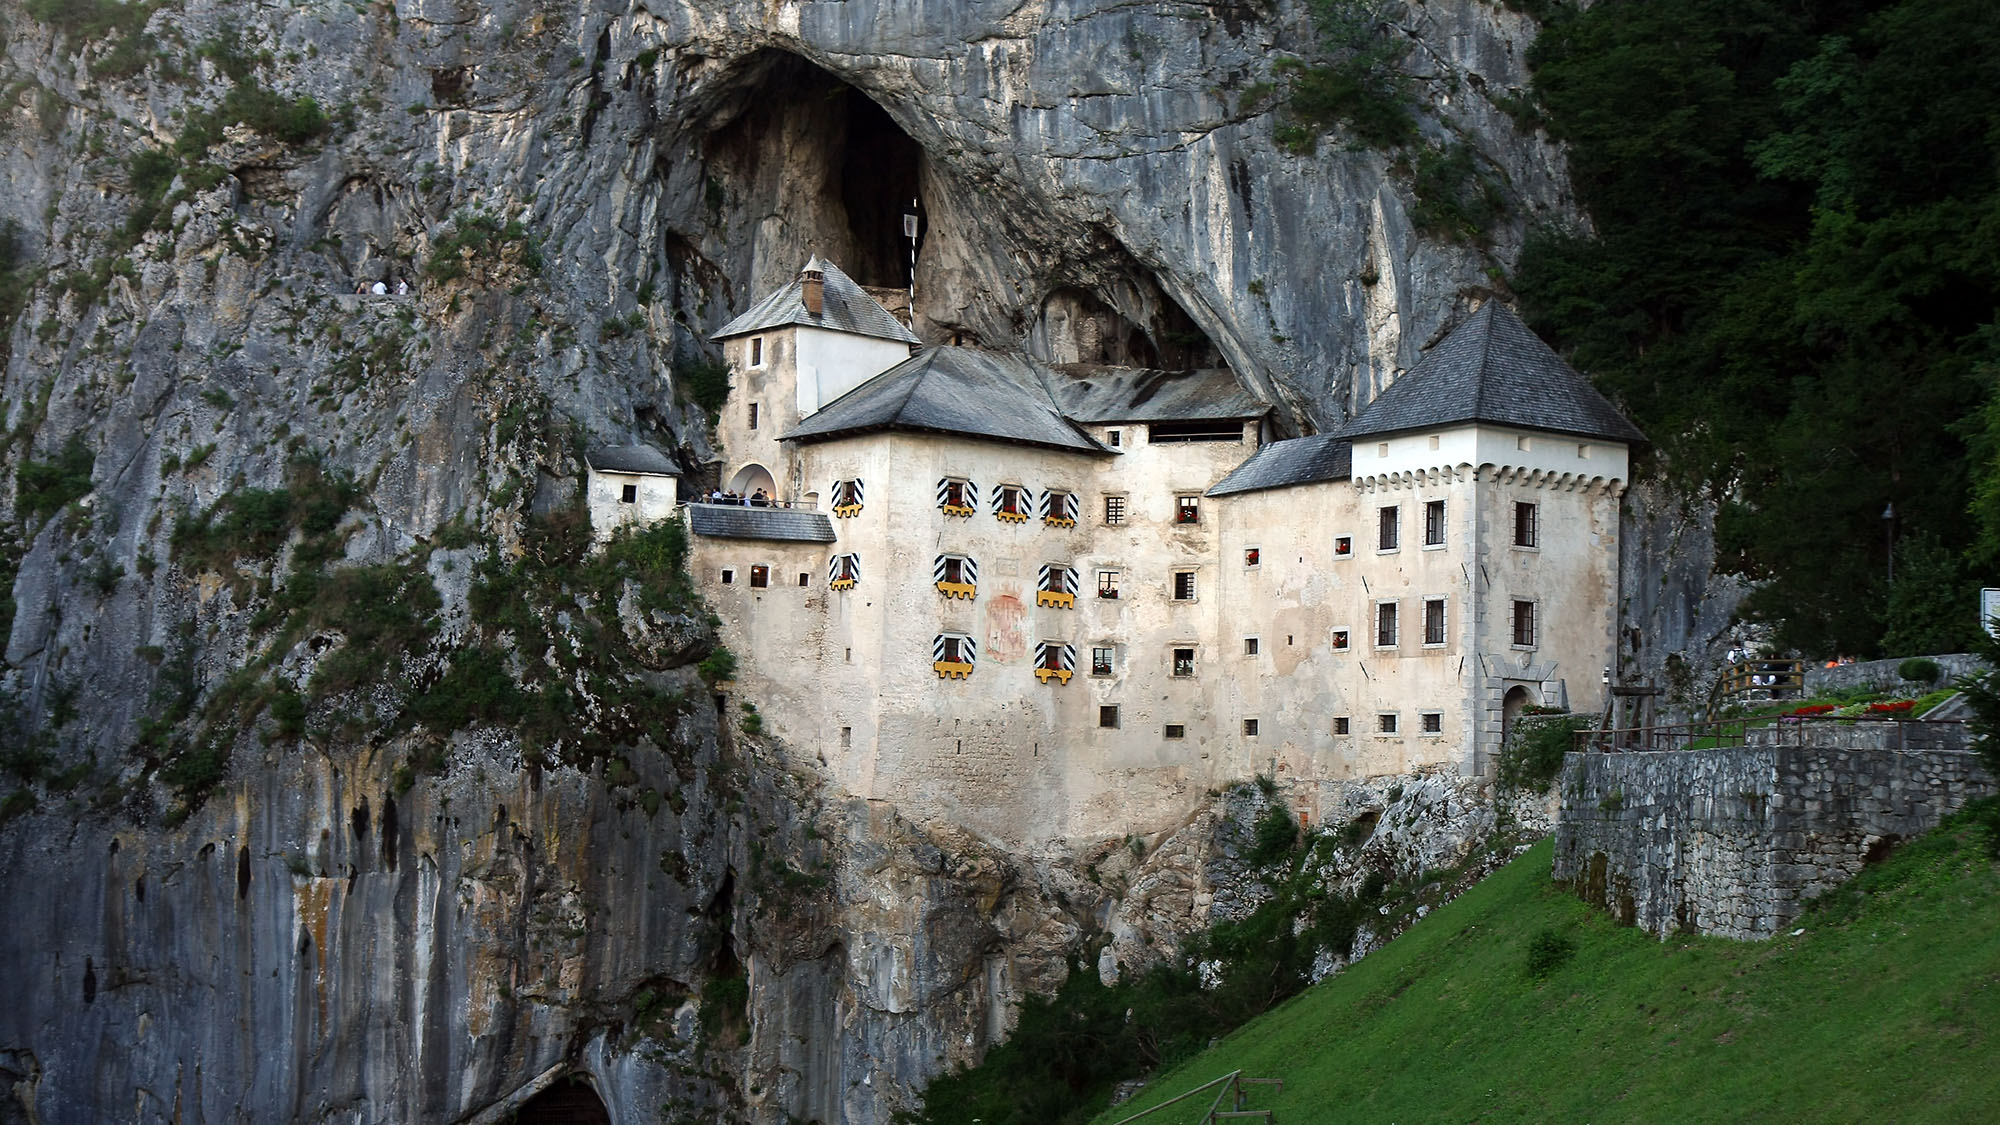 Cliff-side castle comes with a legendary true story straight from a fantasy novel